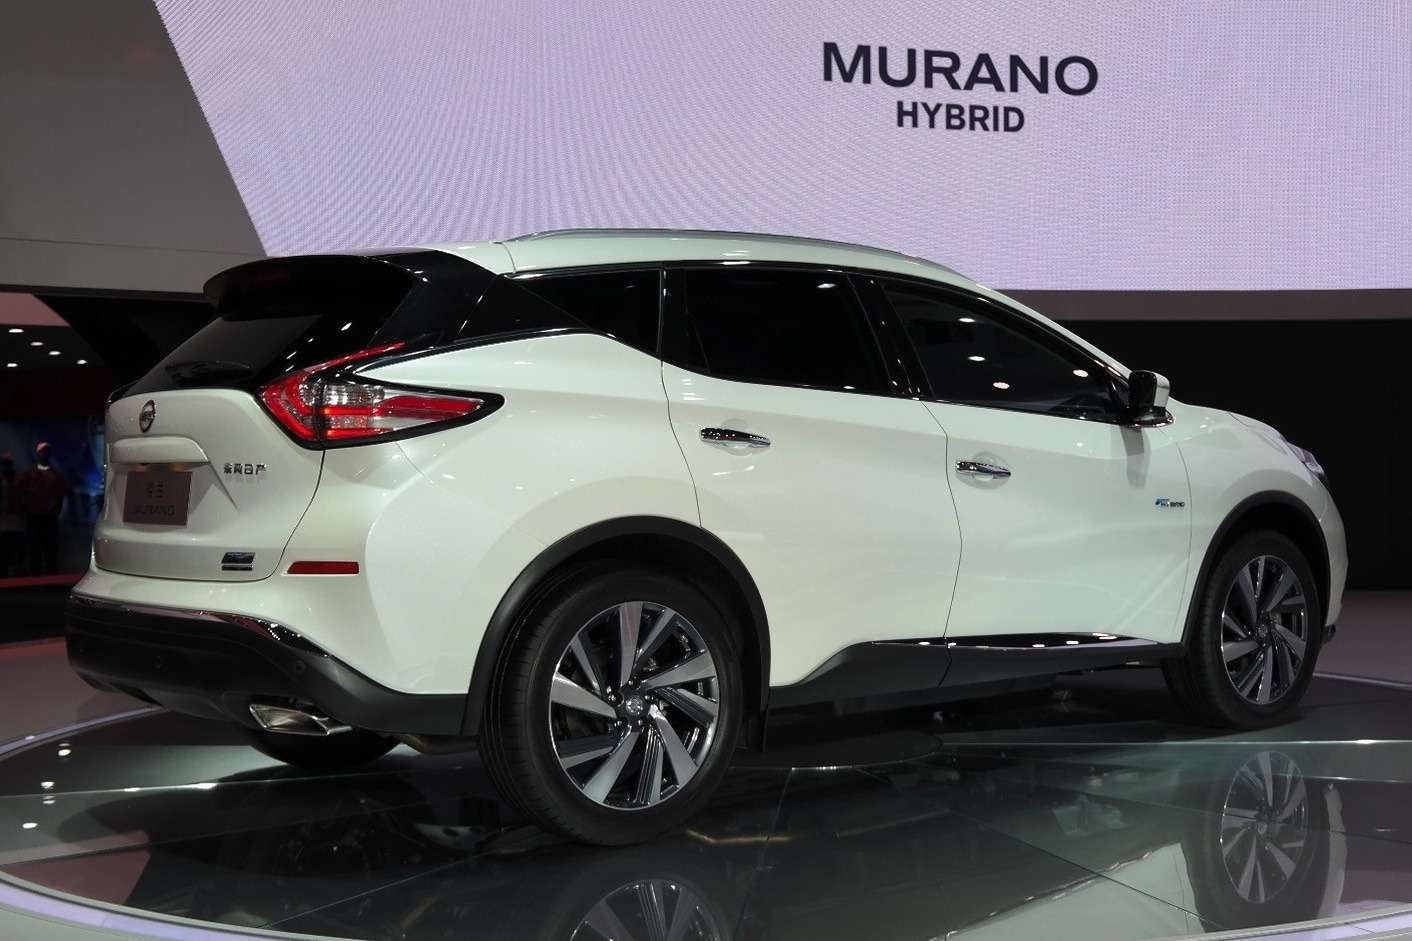 world-premiere-for-2016-nissan-murano-hybrid-at-auto-shanghai-2015-live-photos_30